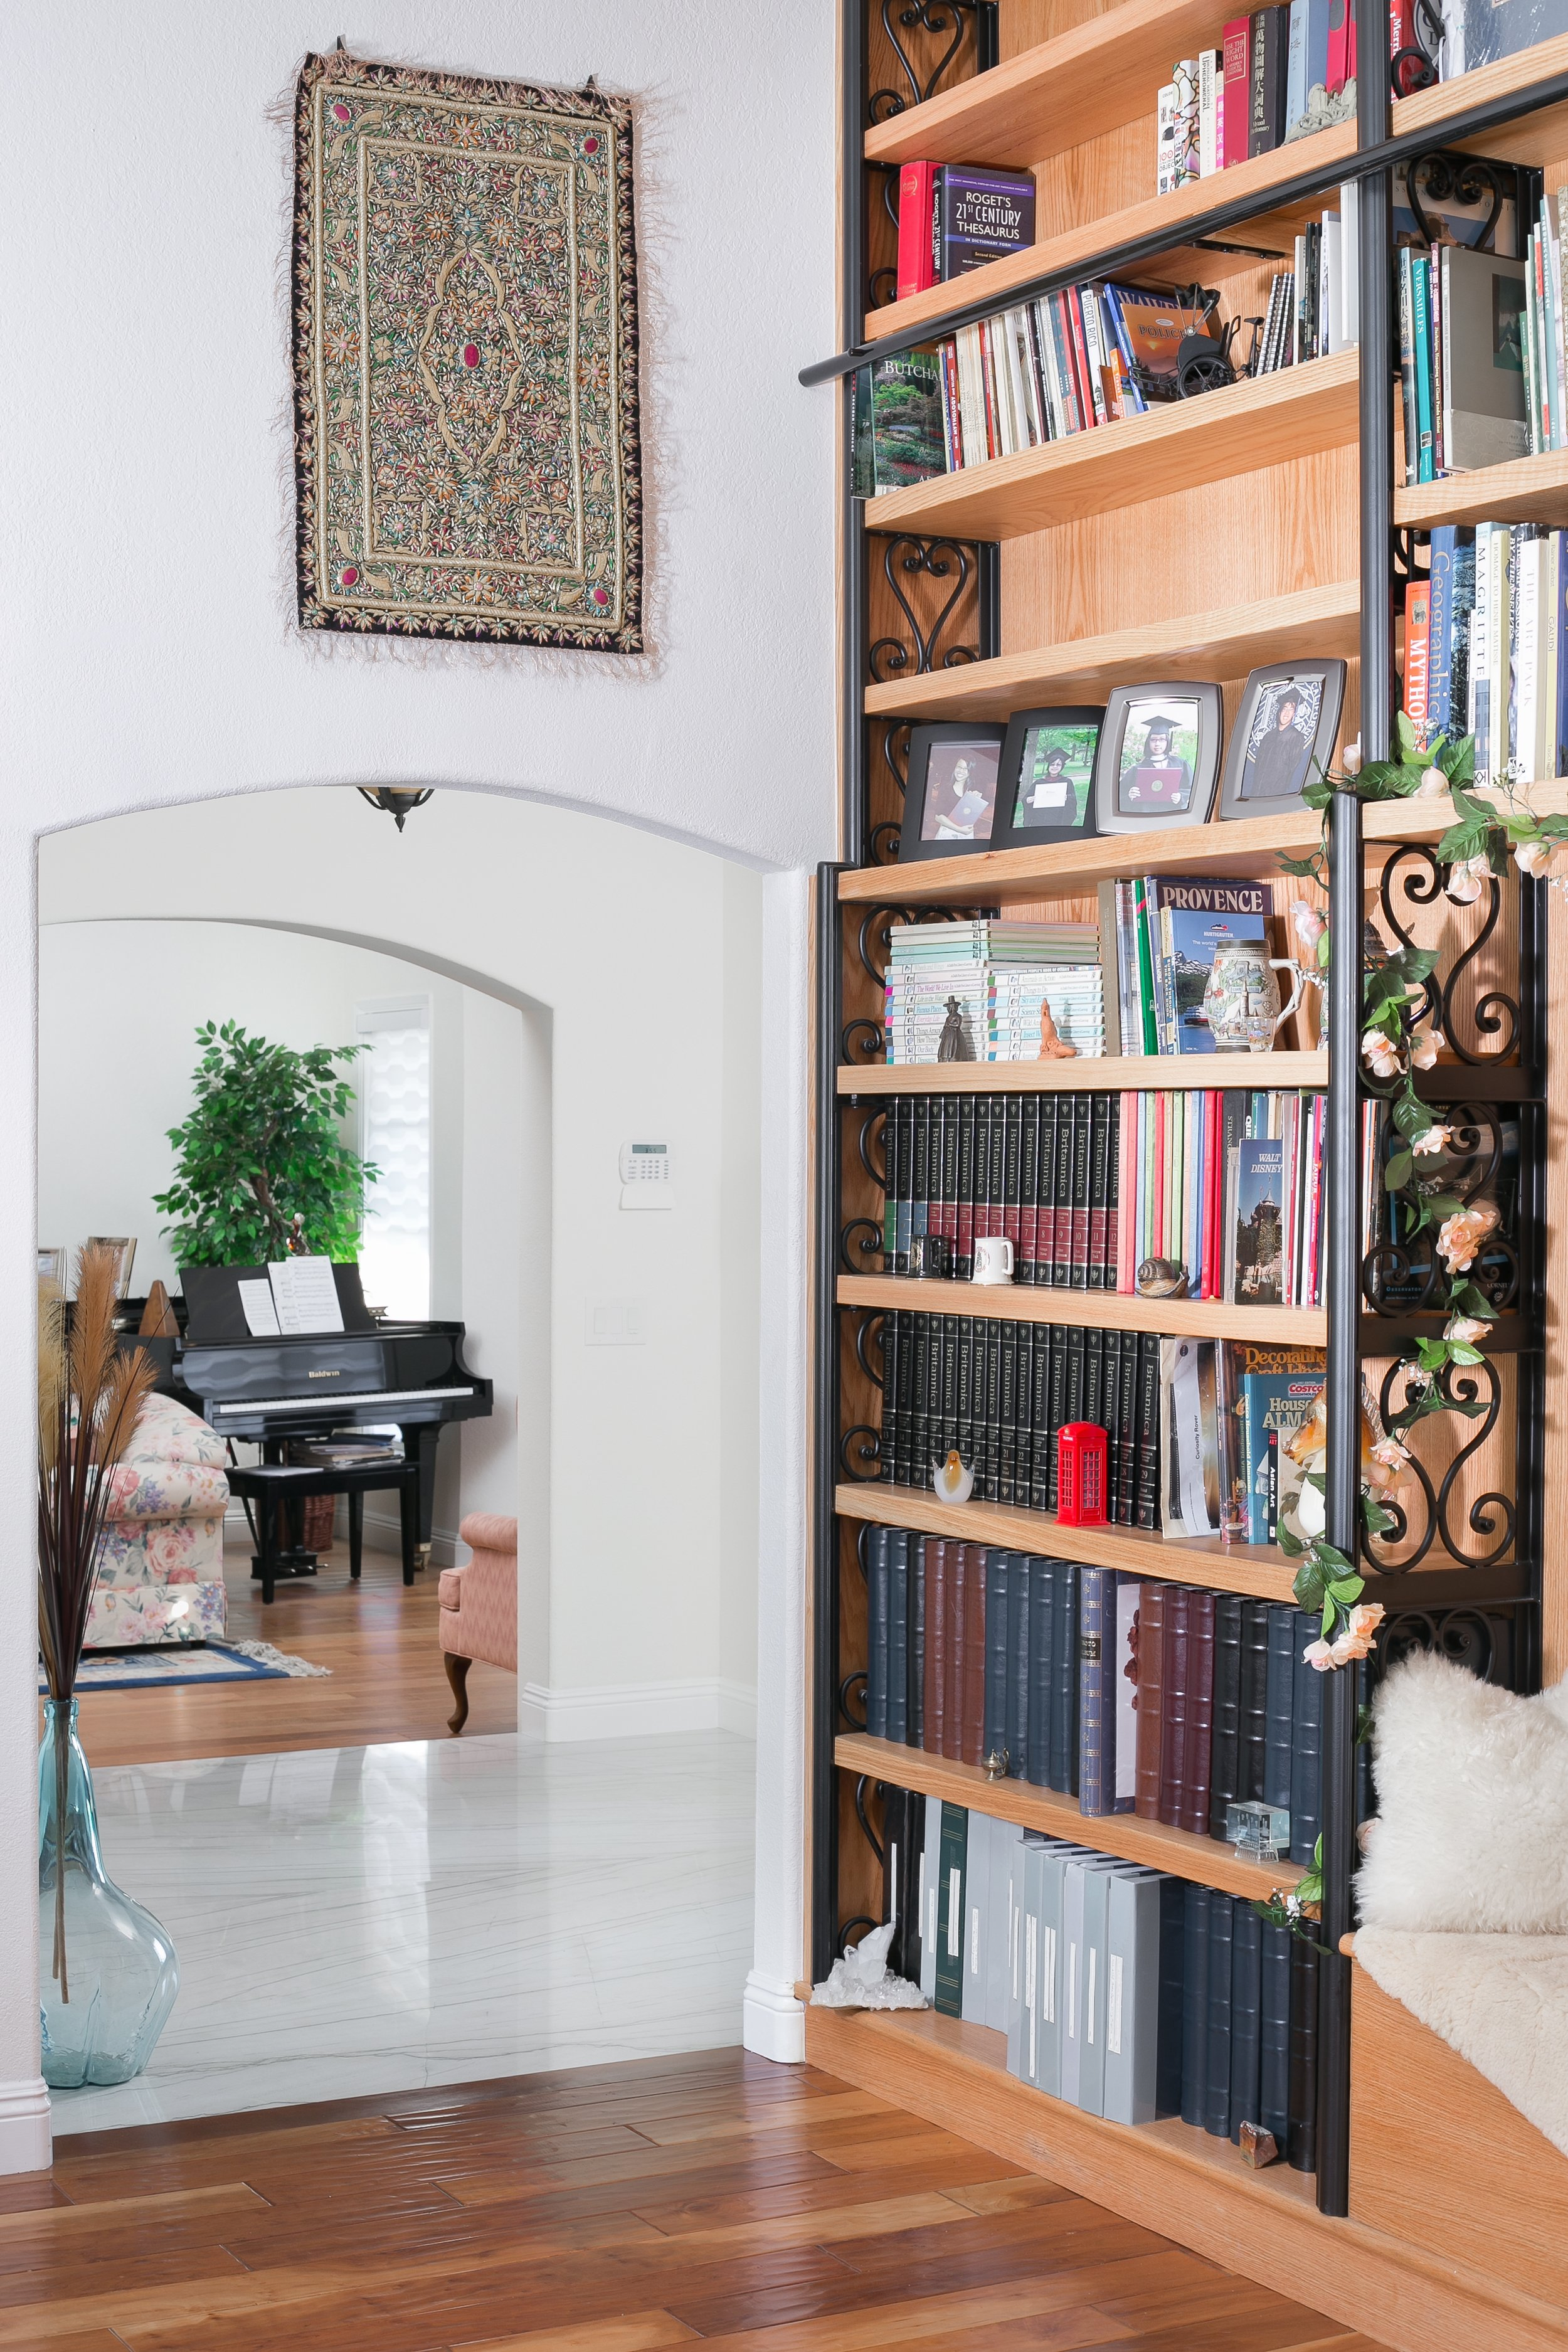 Oak bookshelves with wrought iron detail and a built-in bench